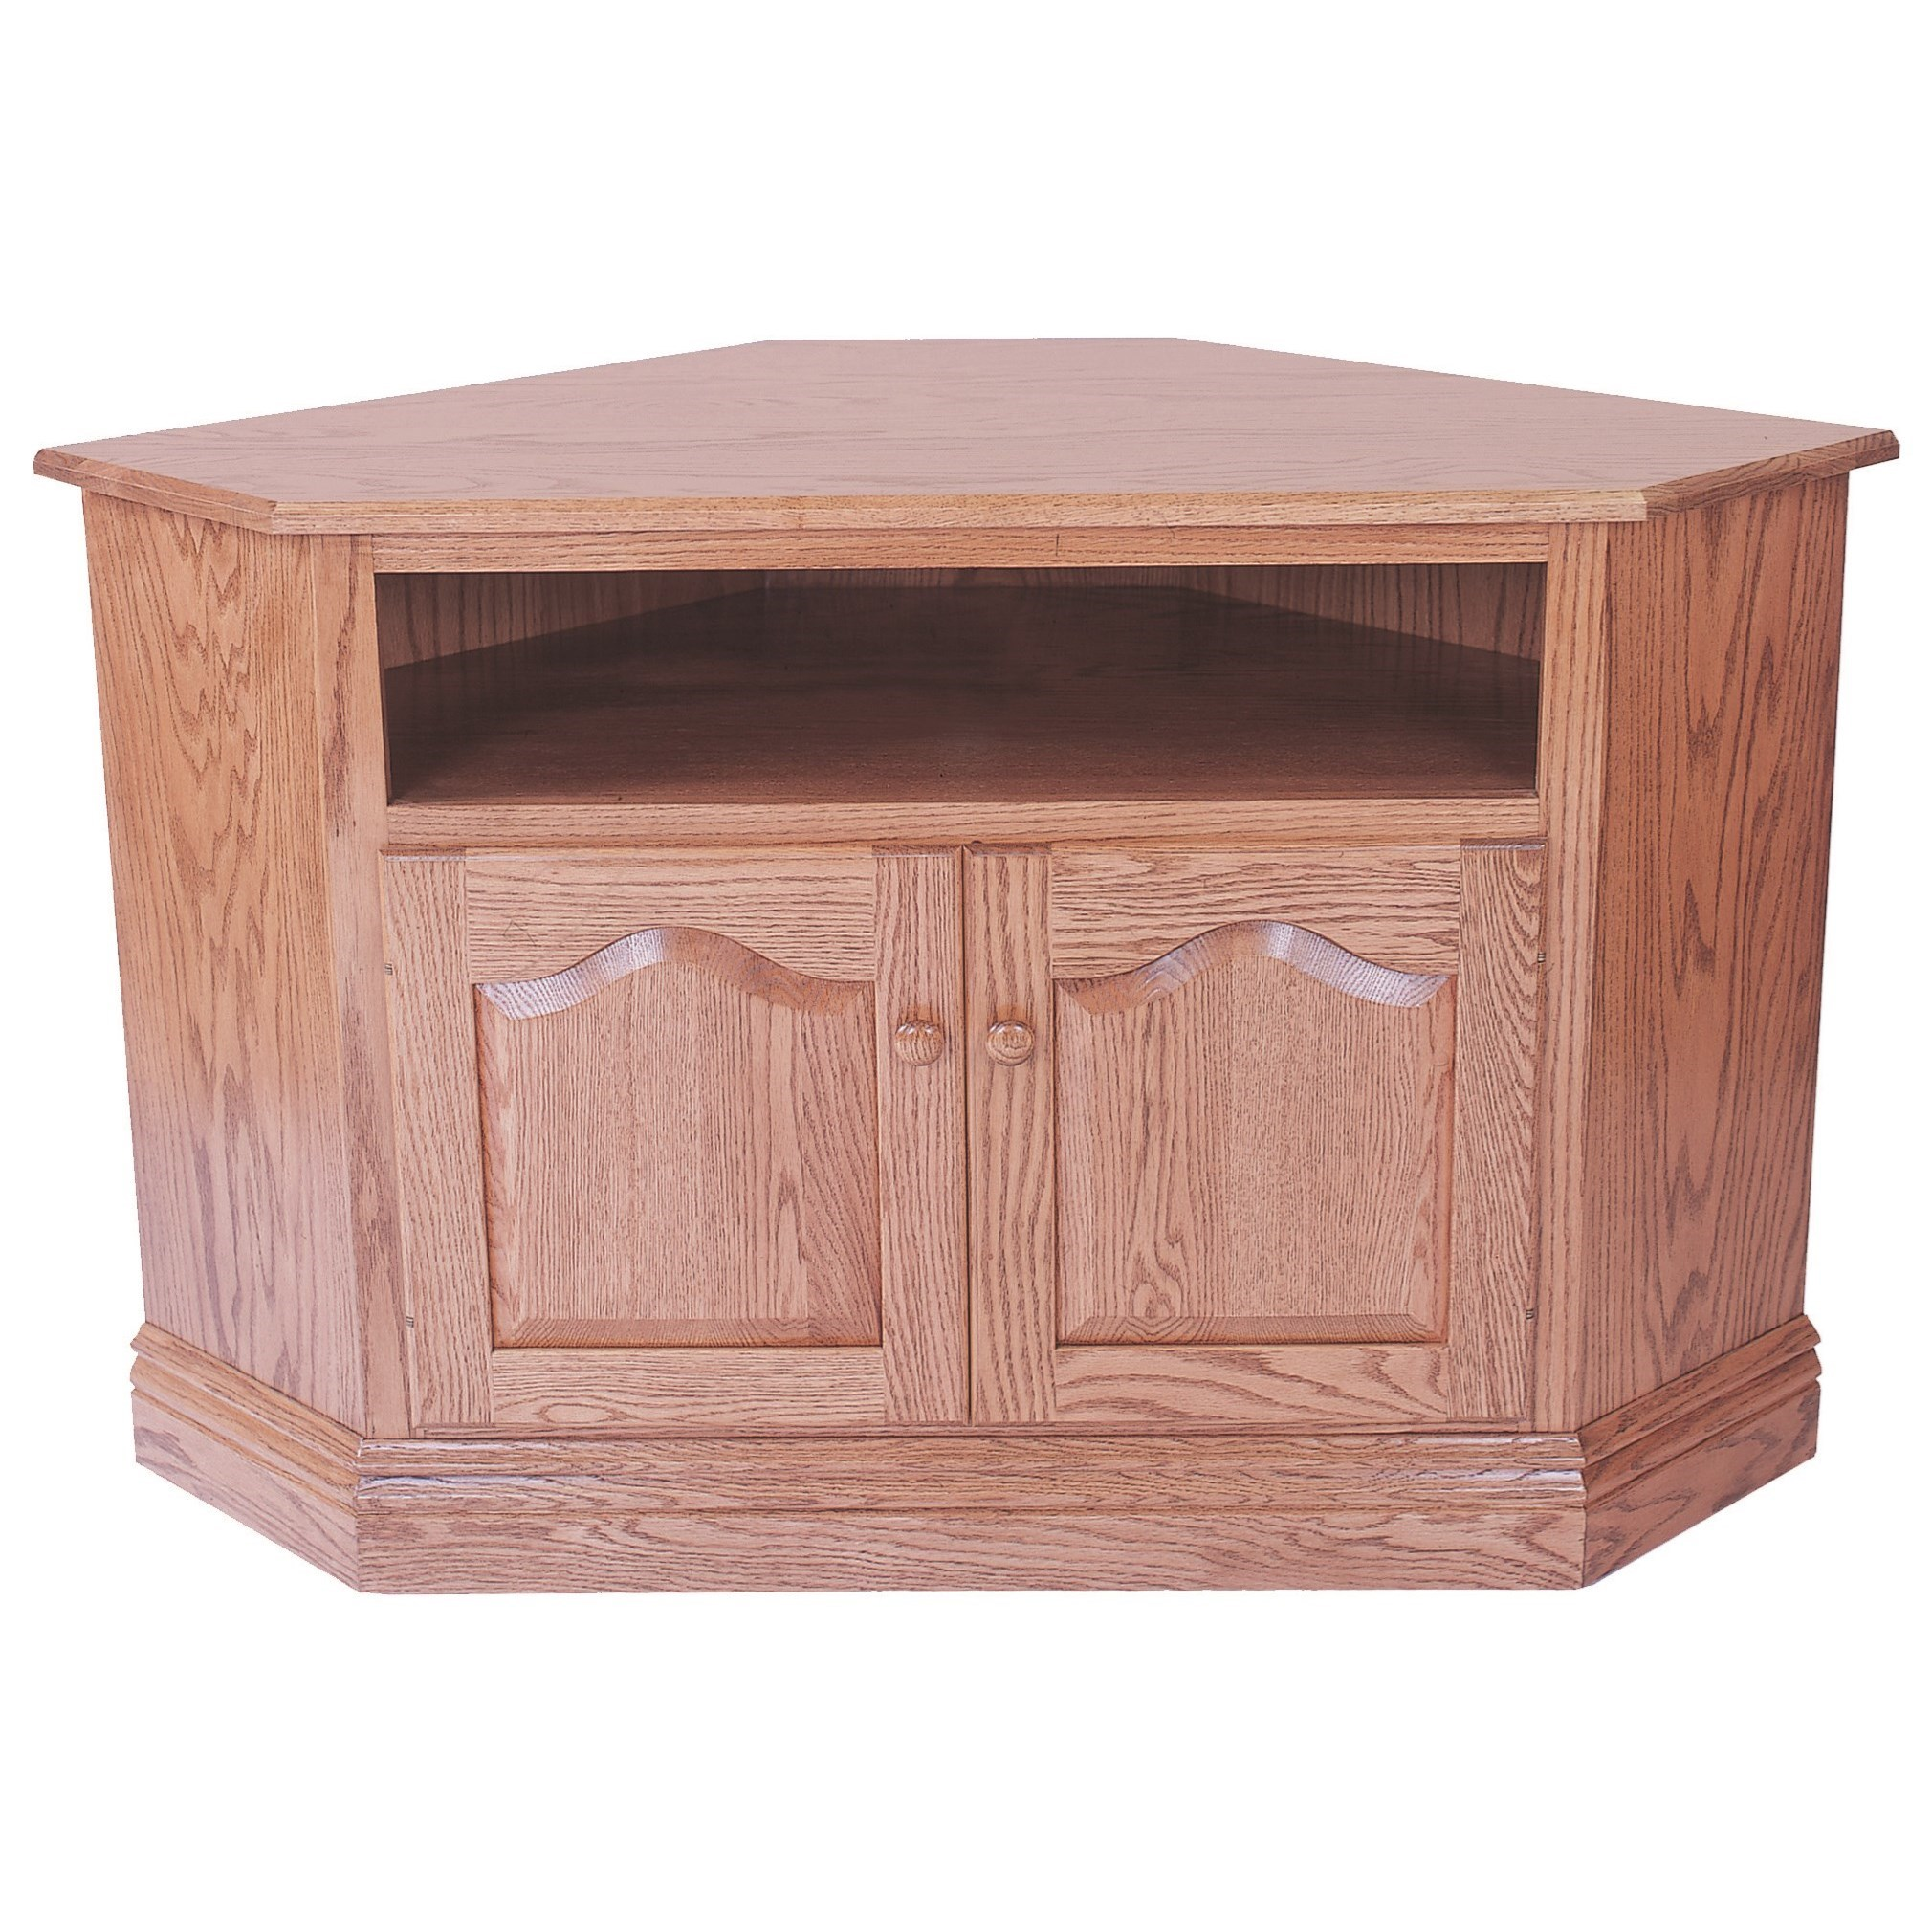 Entertainment Corner TV Stand by INTEG Wood Products at Saugerties Furniture Mart